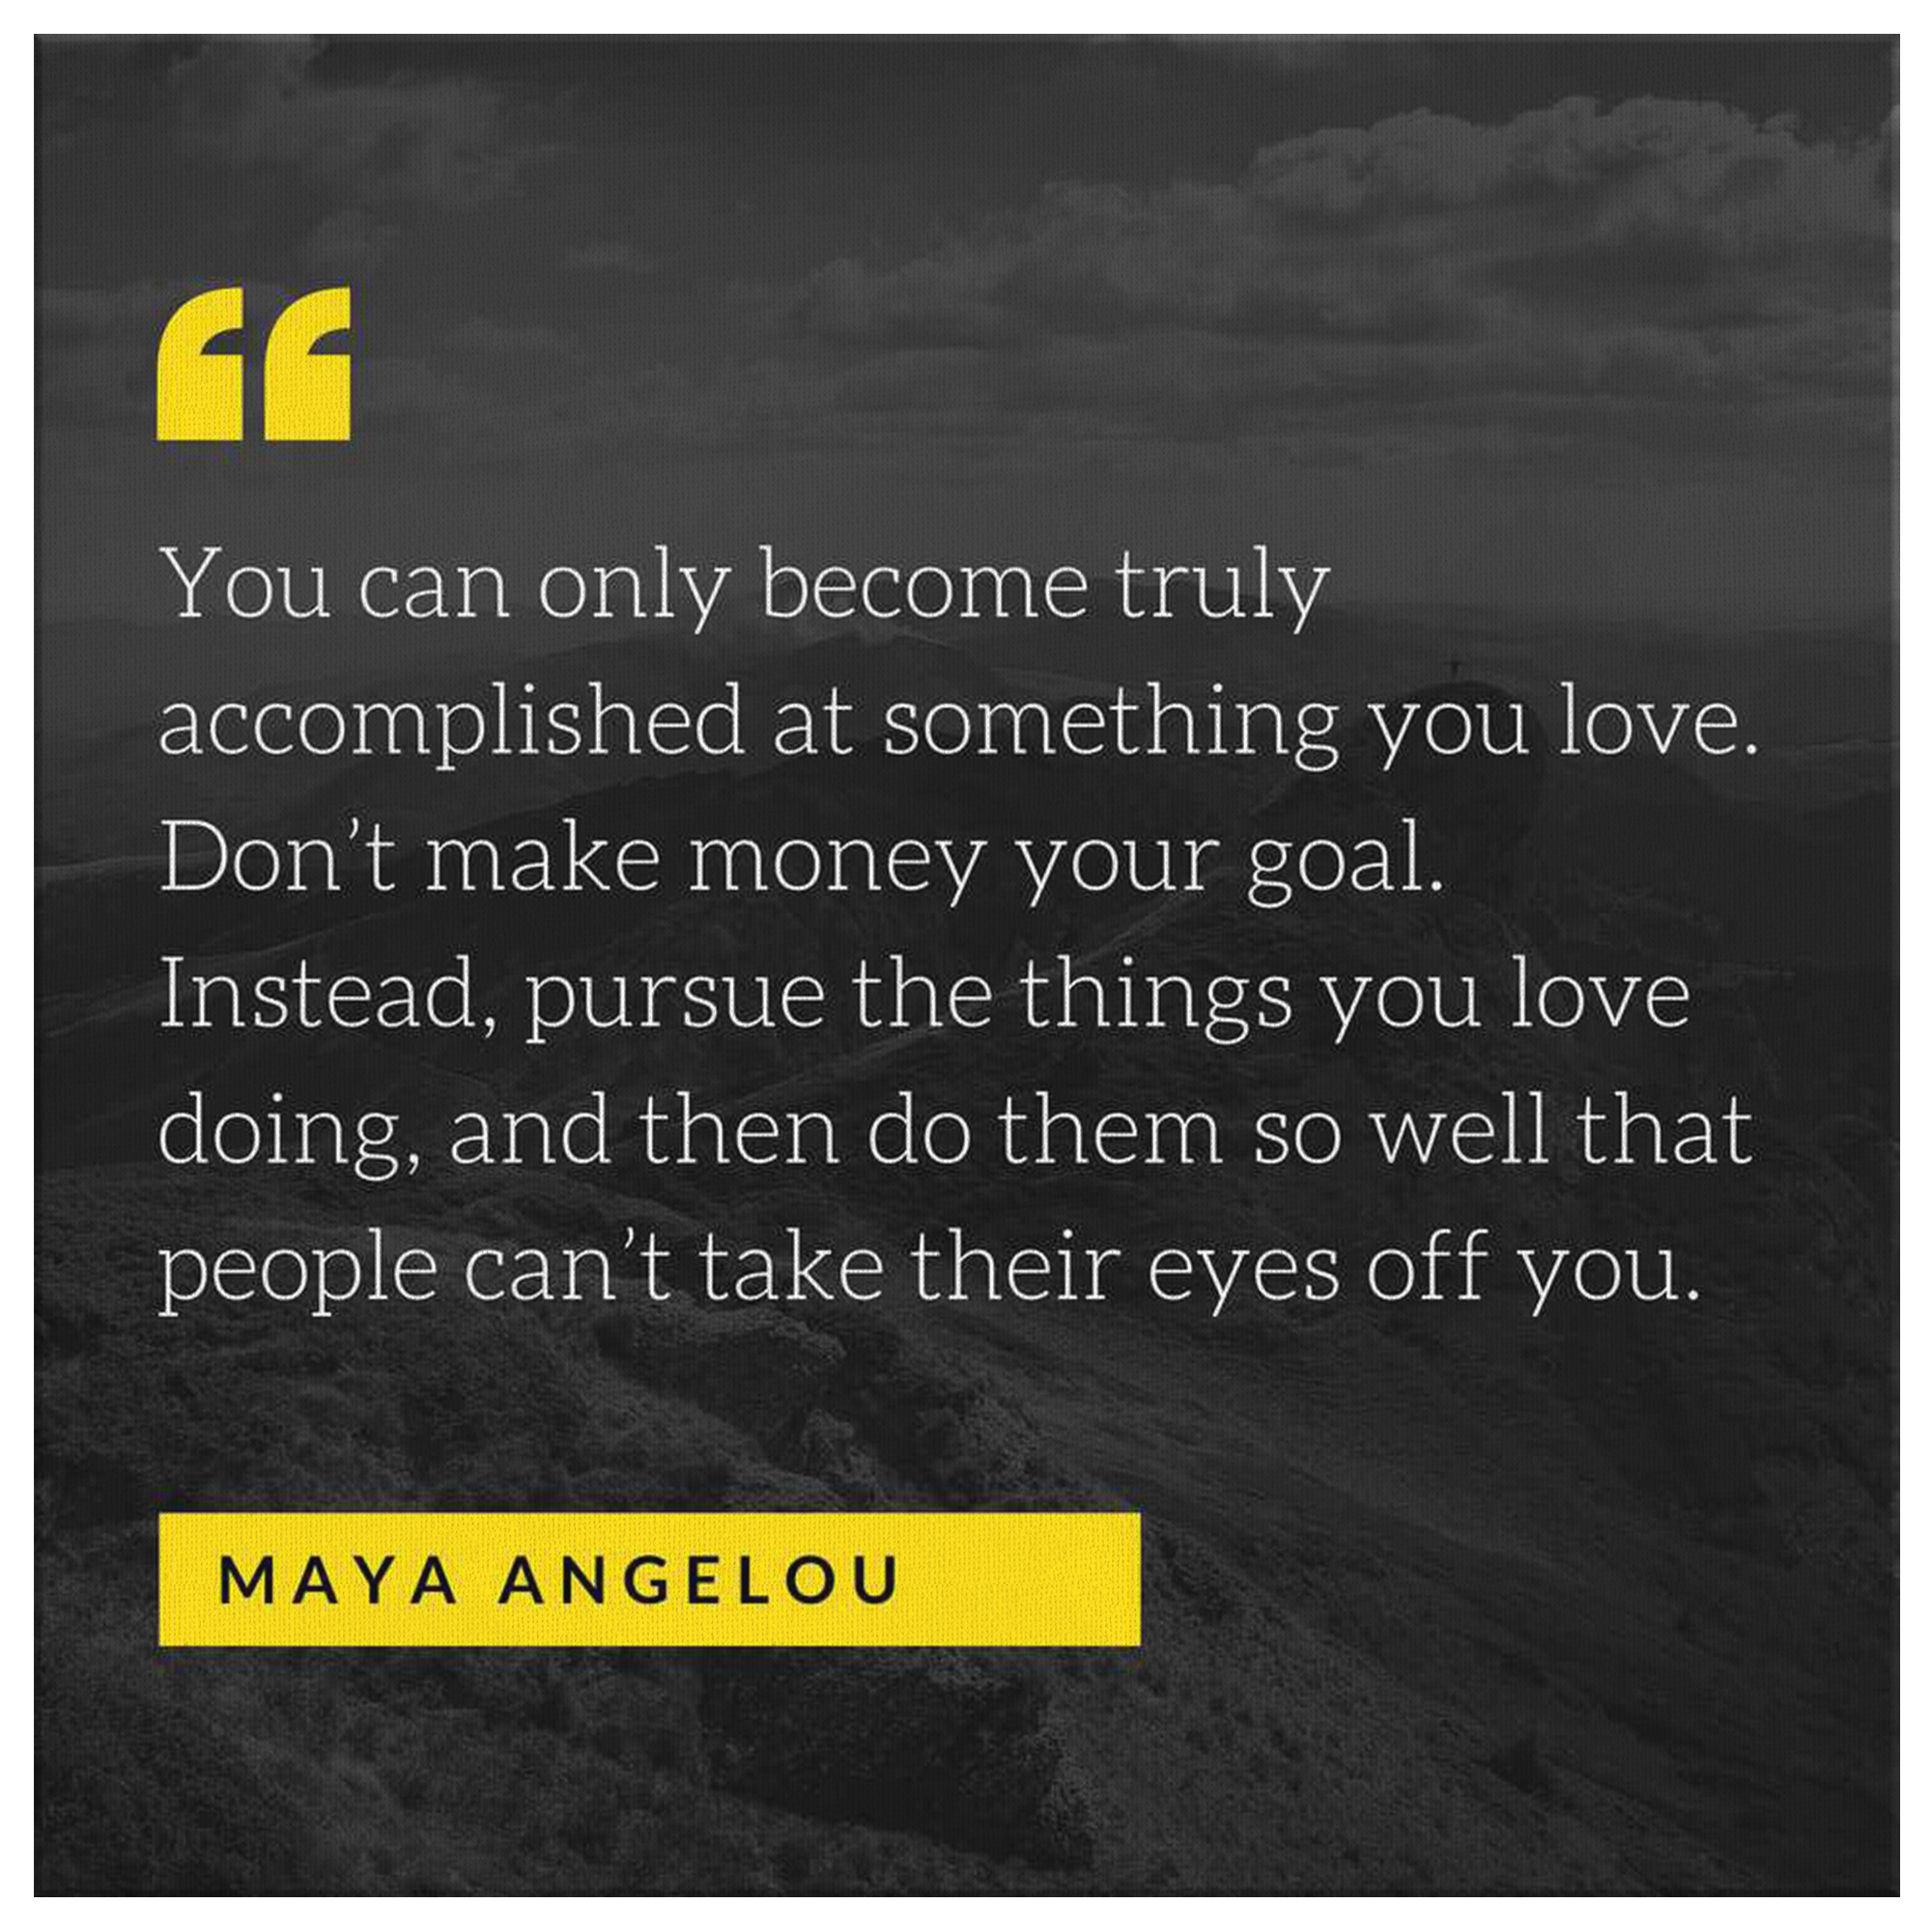 Maya Angelou Mountain Motivational Quote on Canvas